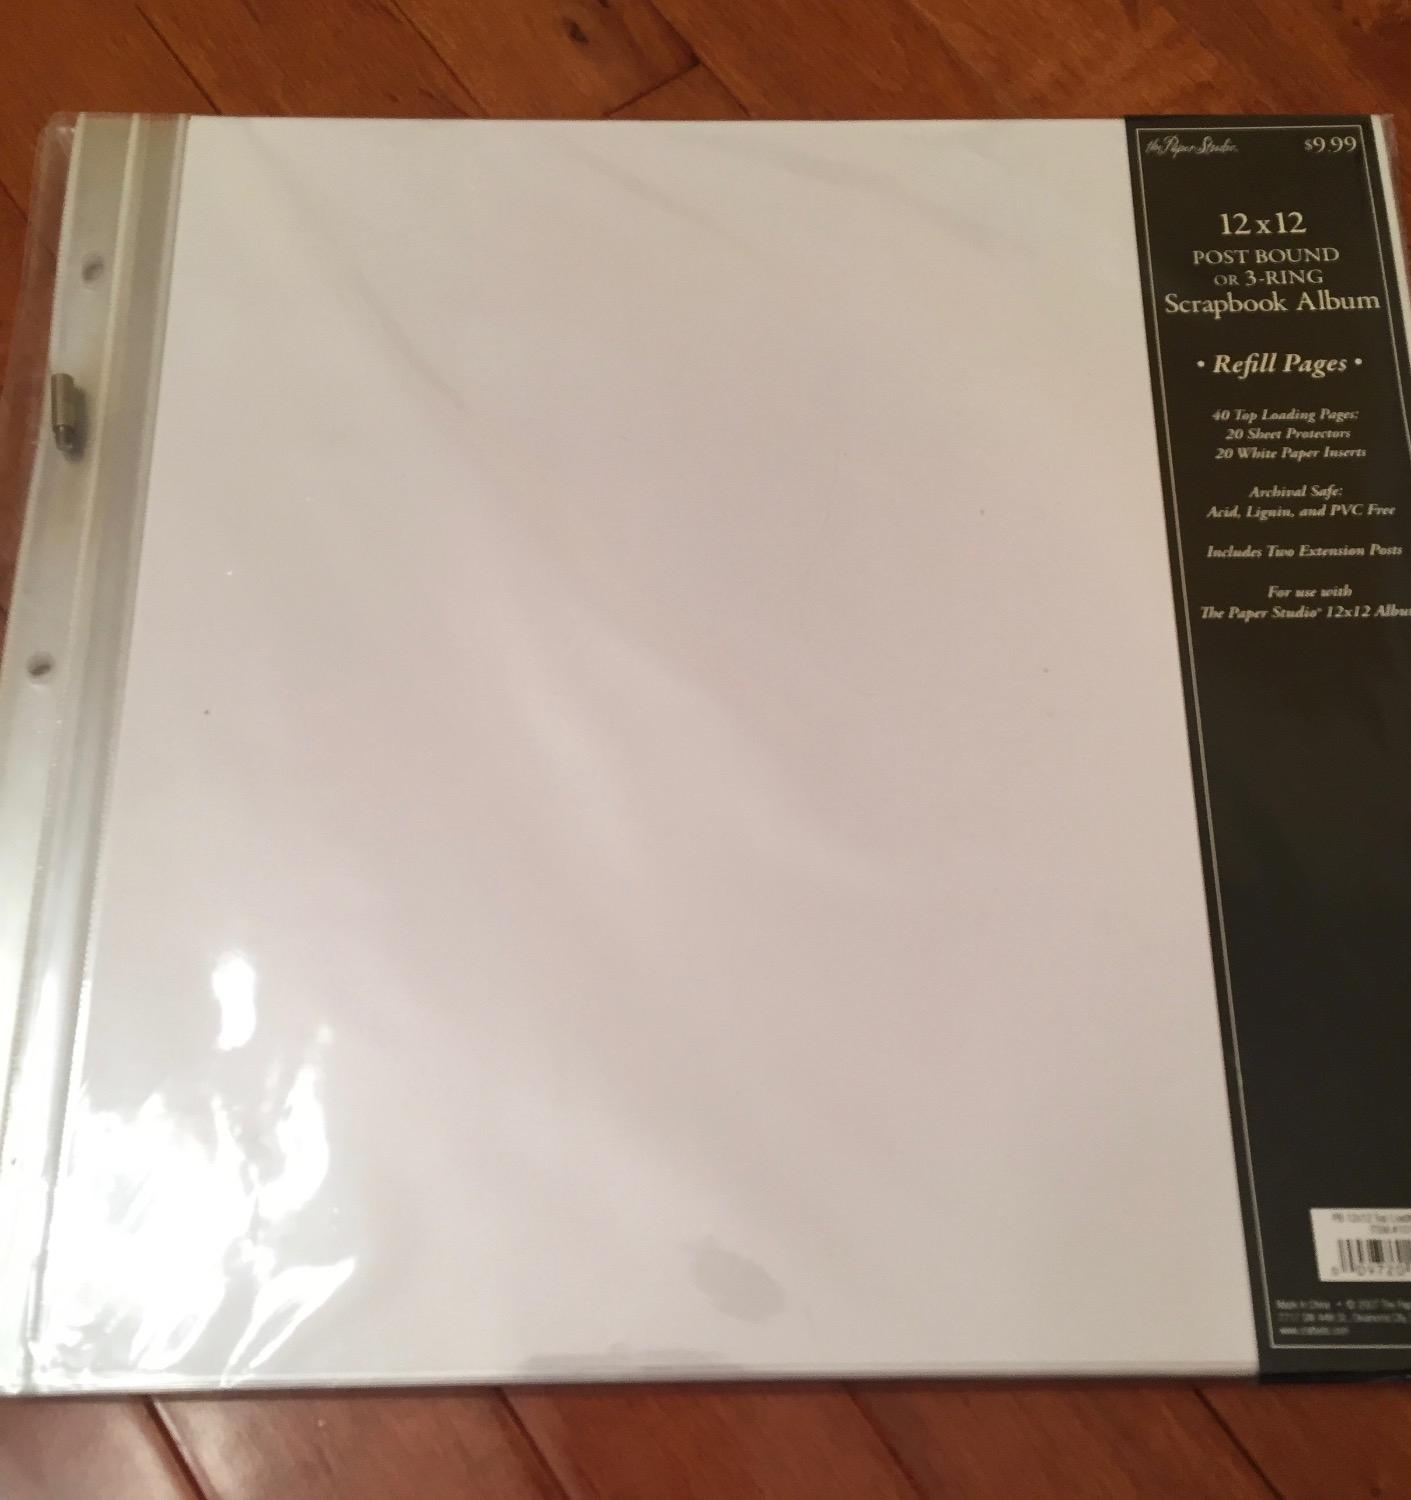 How to refill scrapbook pages - Find More Brand New Still In Package The Paper Studio 12x12 Post Bound Or 3 Ring Scrapbook Album Refill Pages I Have 2 Of These 4 00 Each For Sale At Up